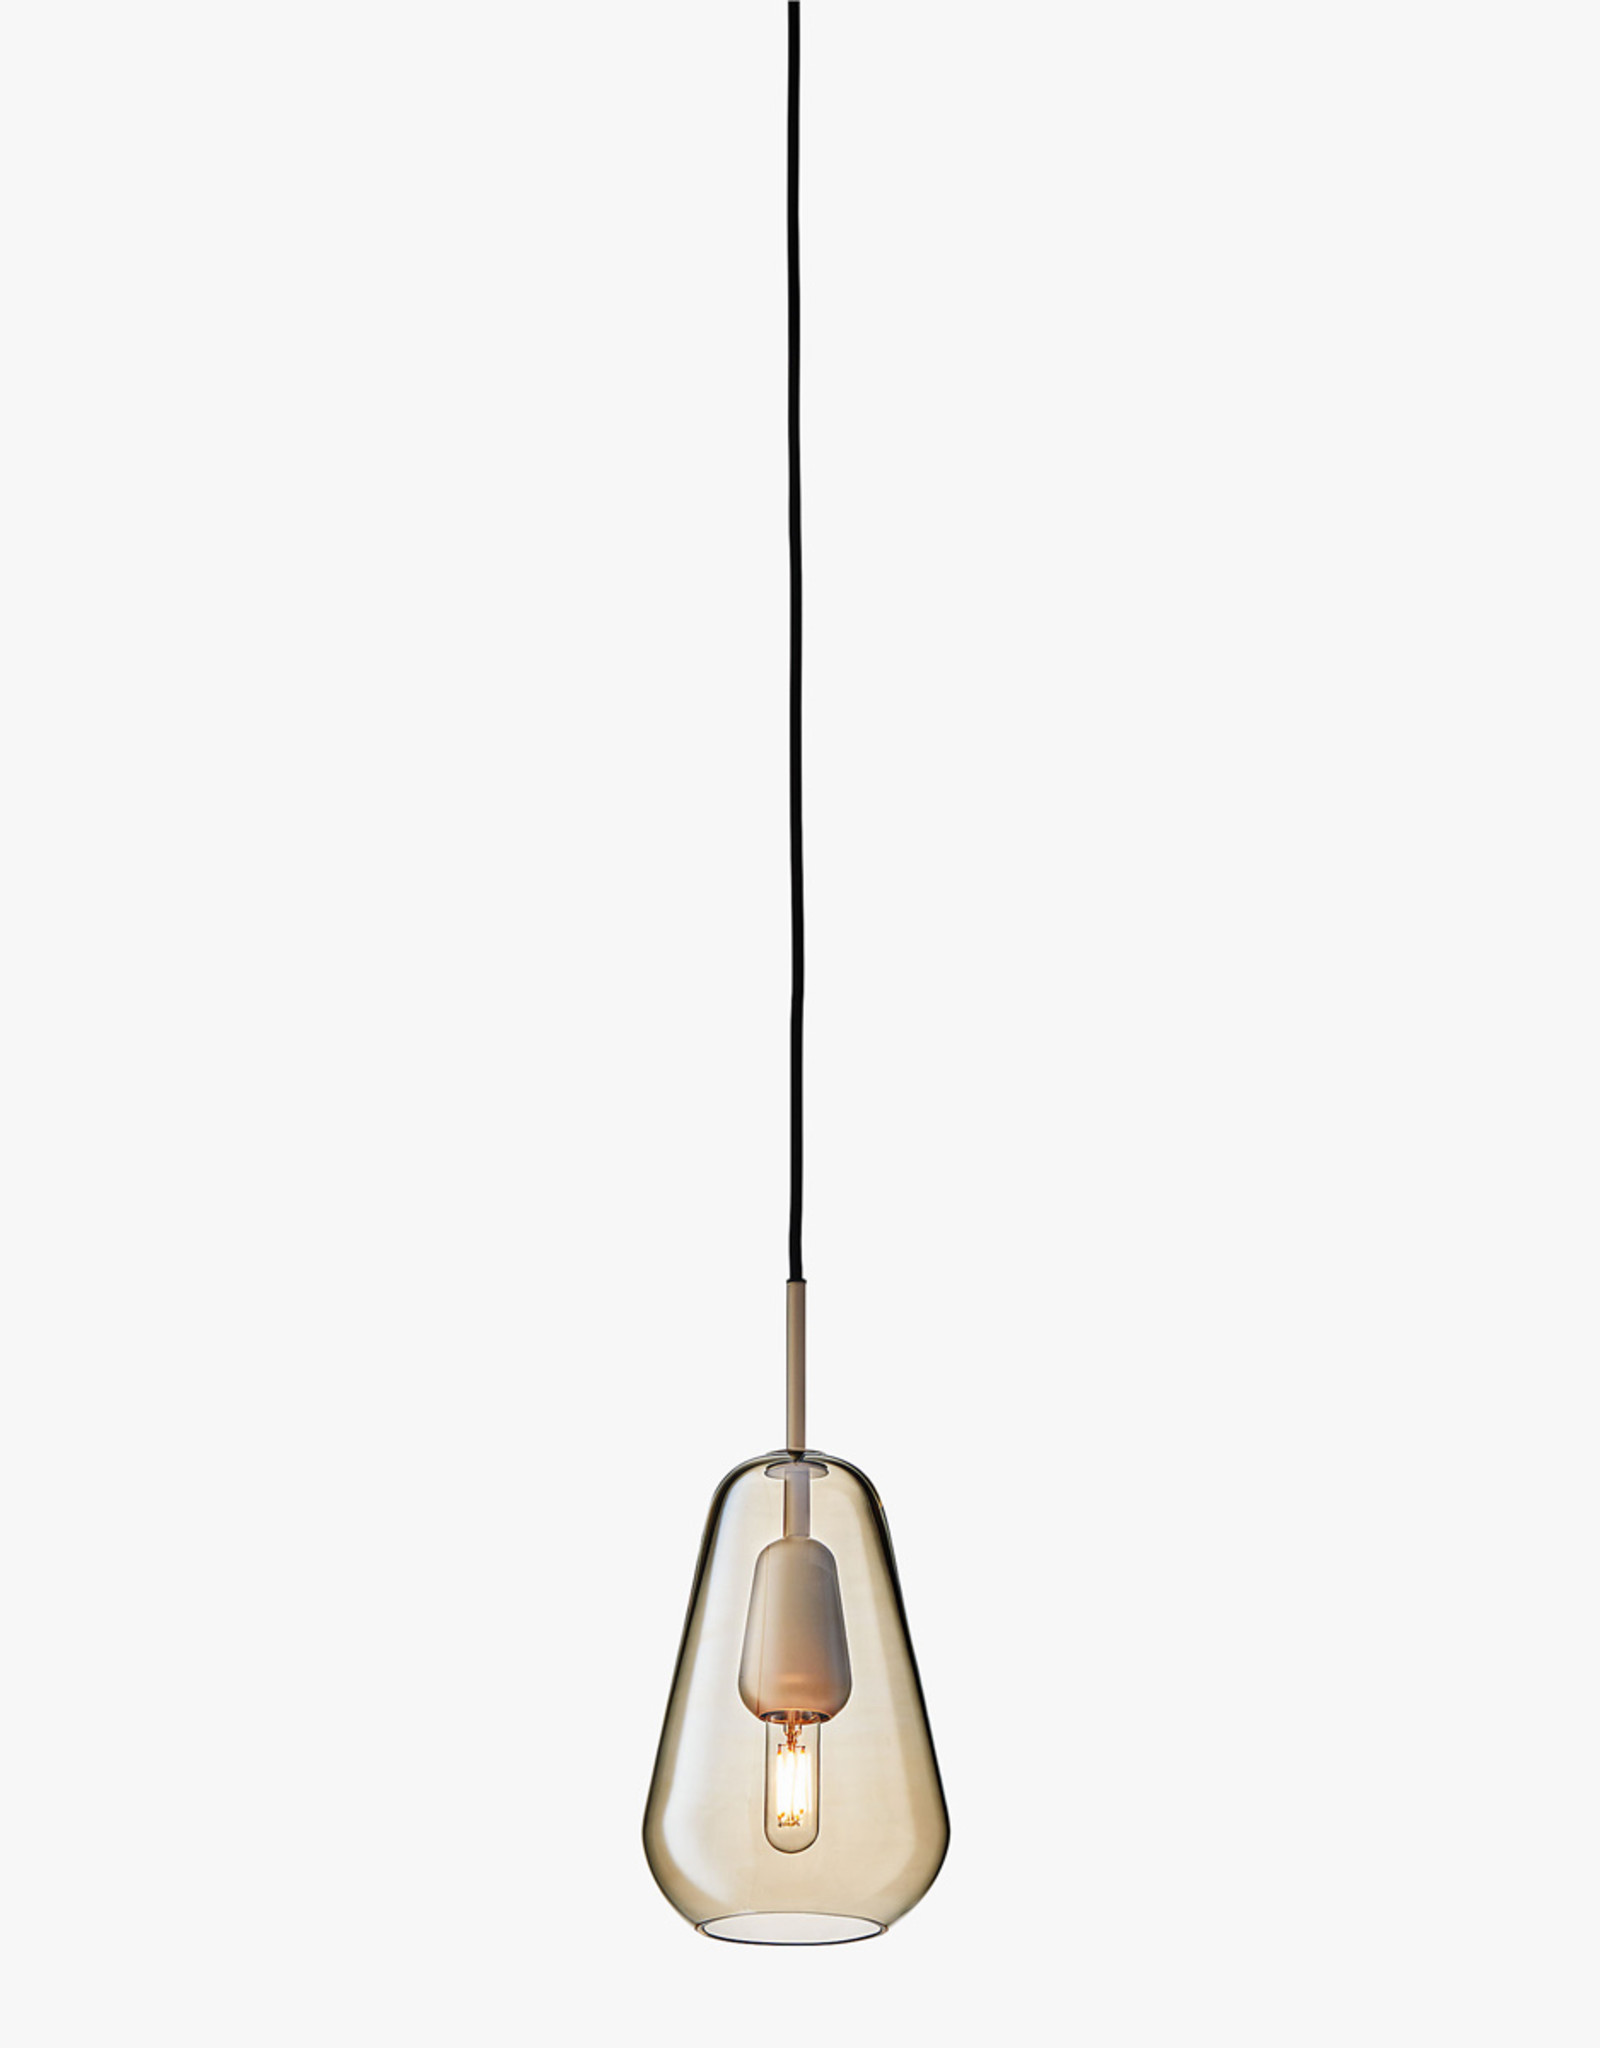 Nuura Anoli 1 pendant by Sofie Refer | S | Nordic gold/gold